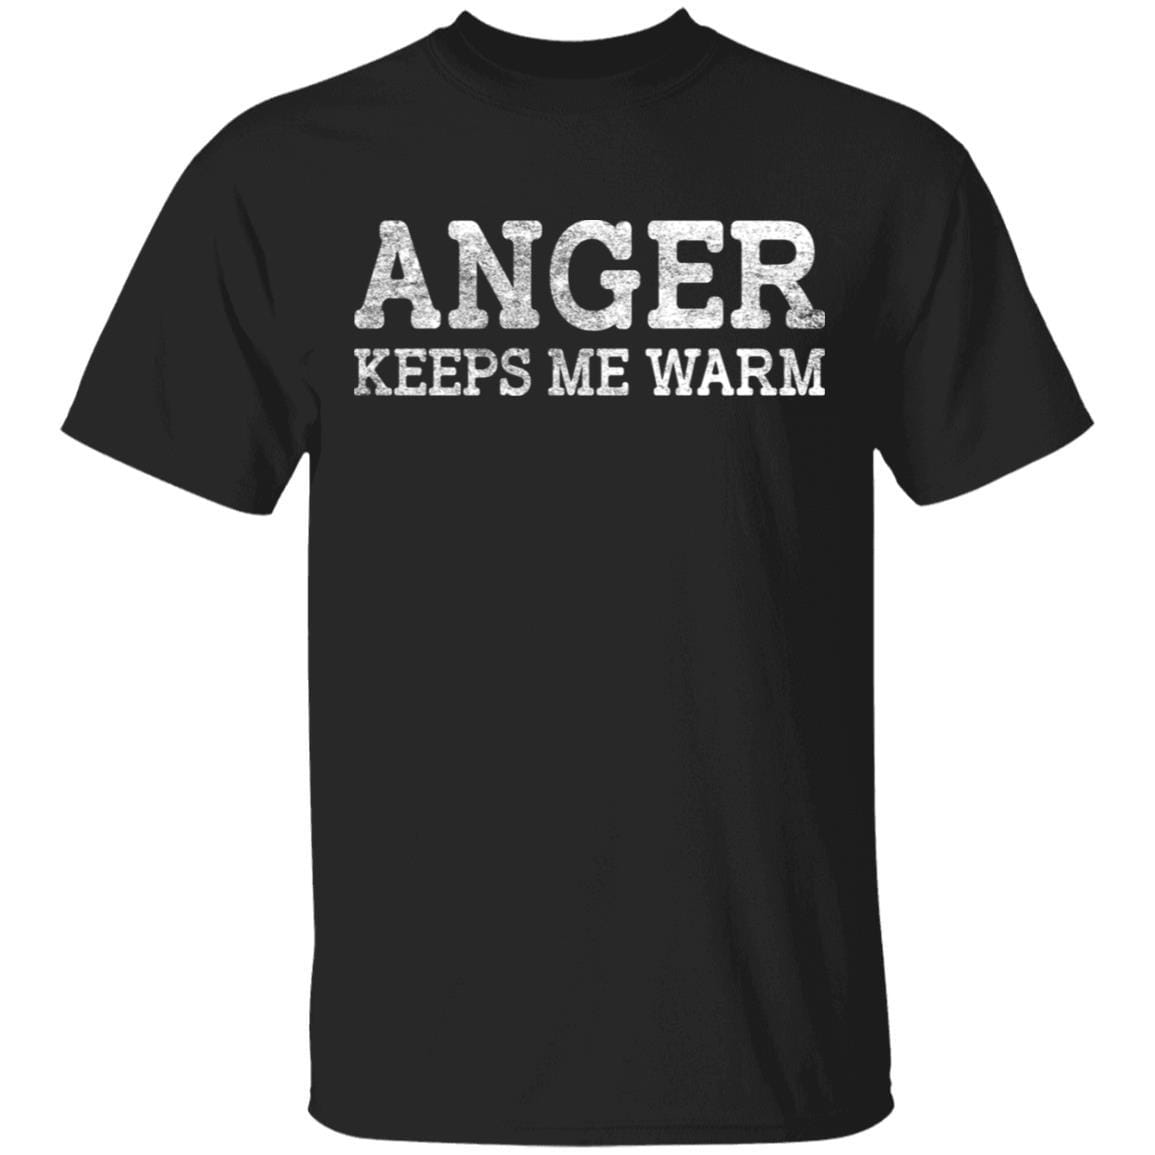 Anger Keeps Me Warm T-Shirts, Hoodies 1049-9953-88064169-48144 - Tee Ript